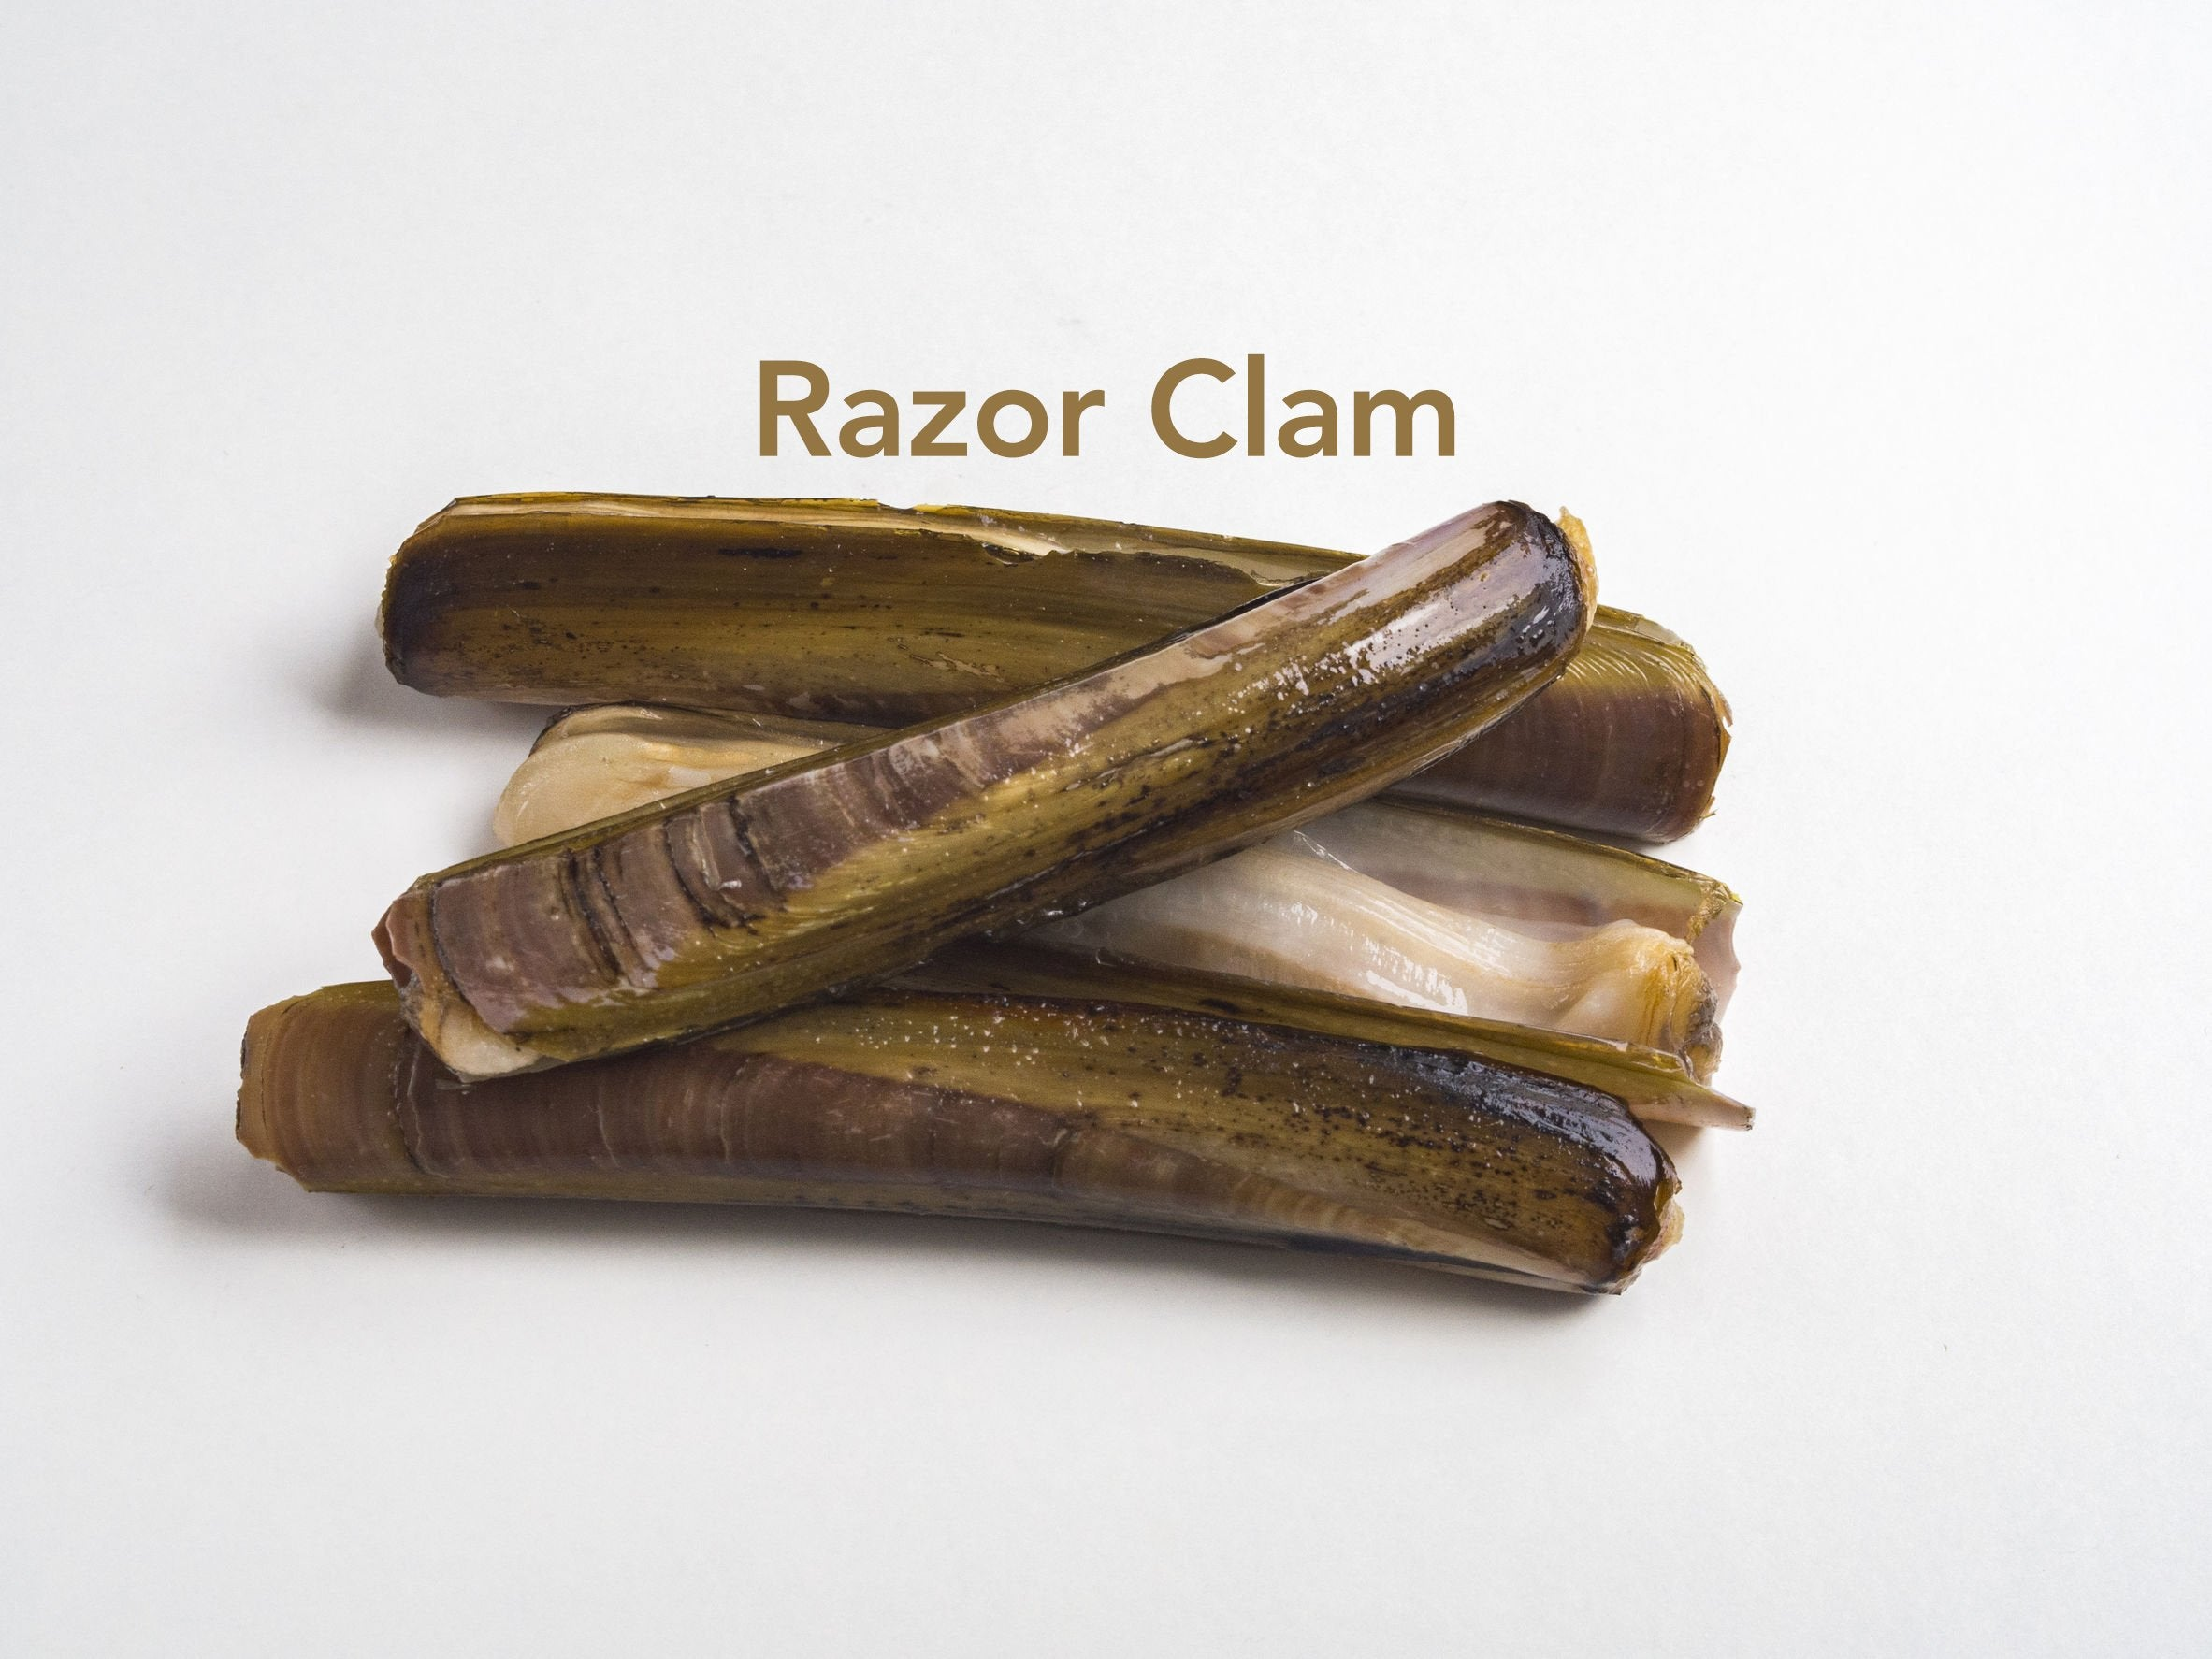 Razor Clams for sale - Parson's Nose